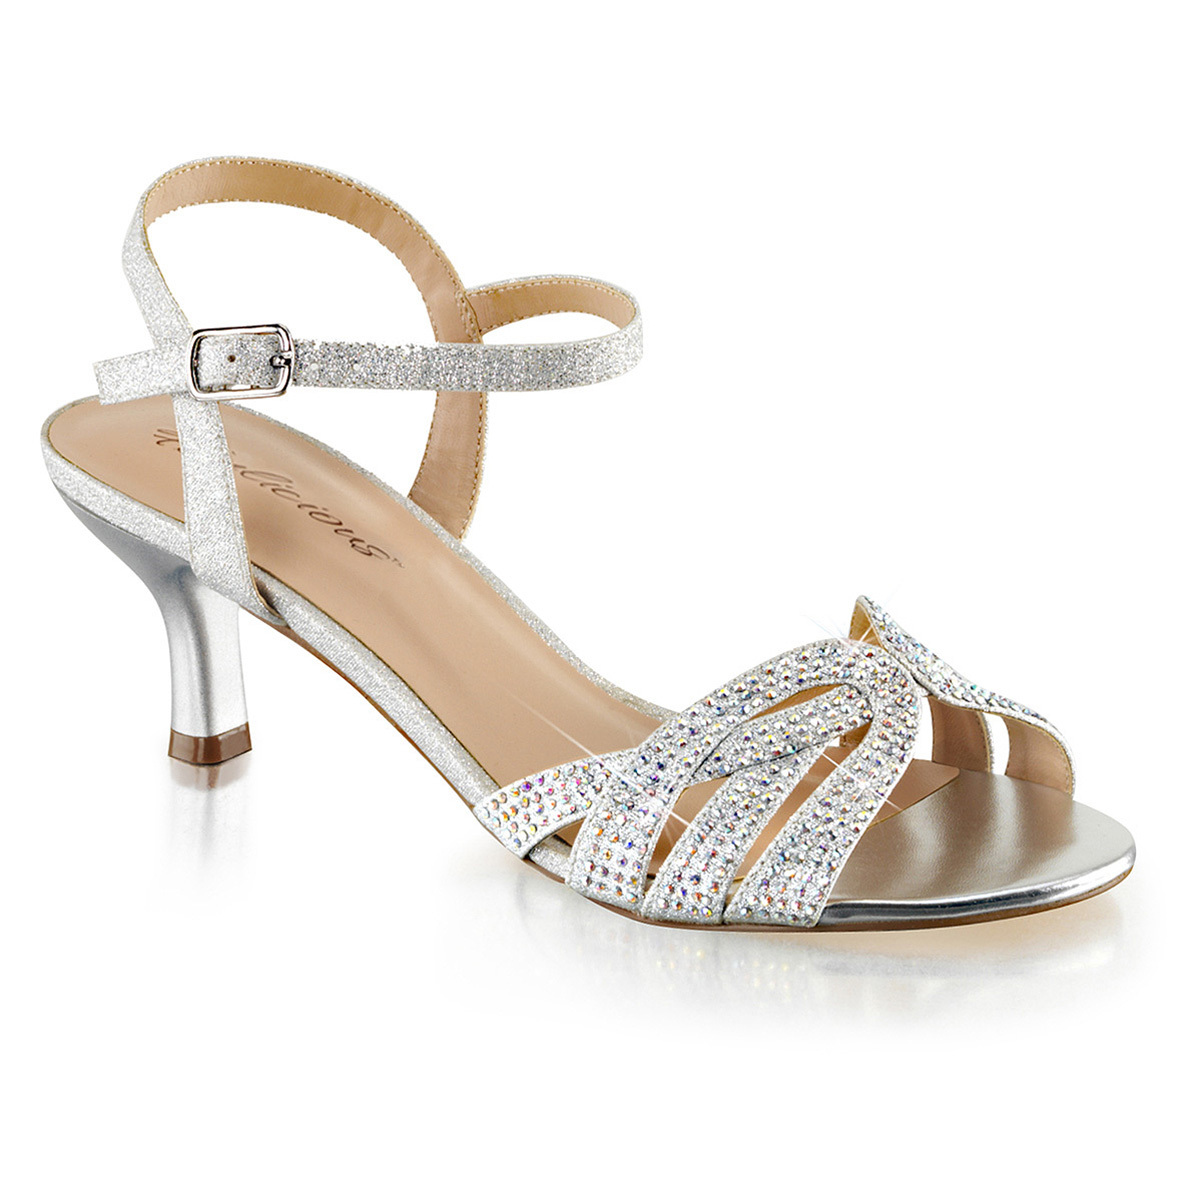 Womens Kitten Heel Shoes Sparkly Silver Ankle Strap Sandals Rhinestone 2 1/2 In